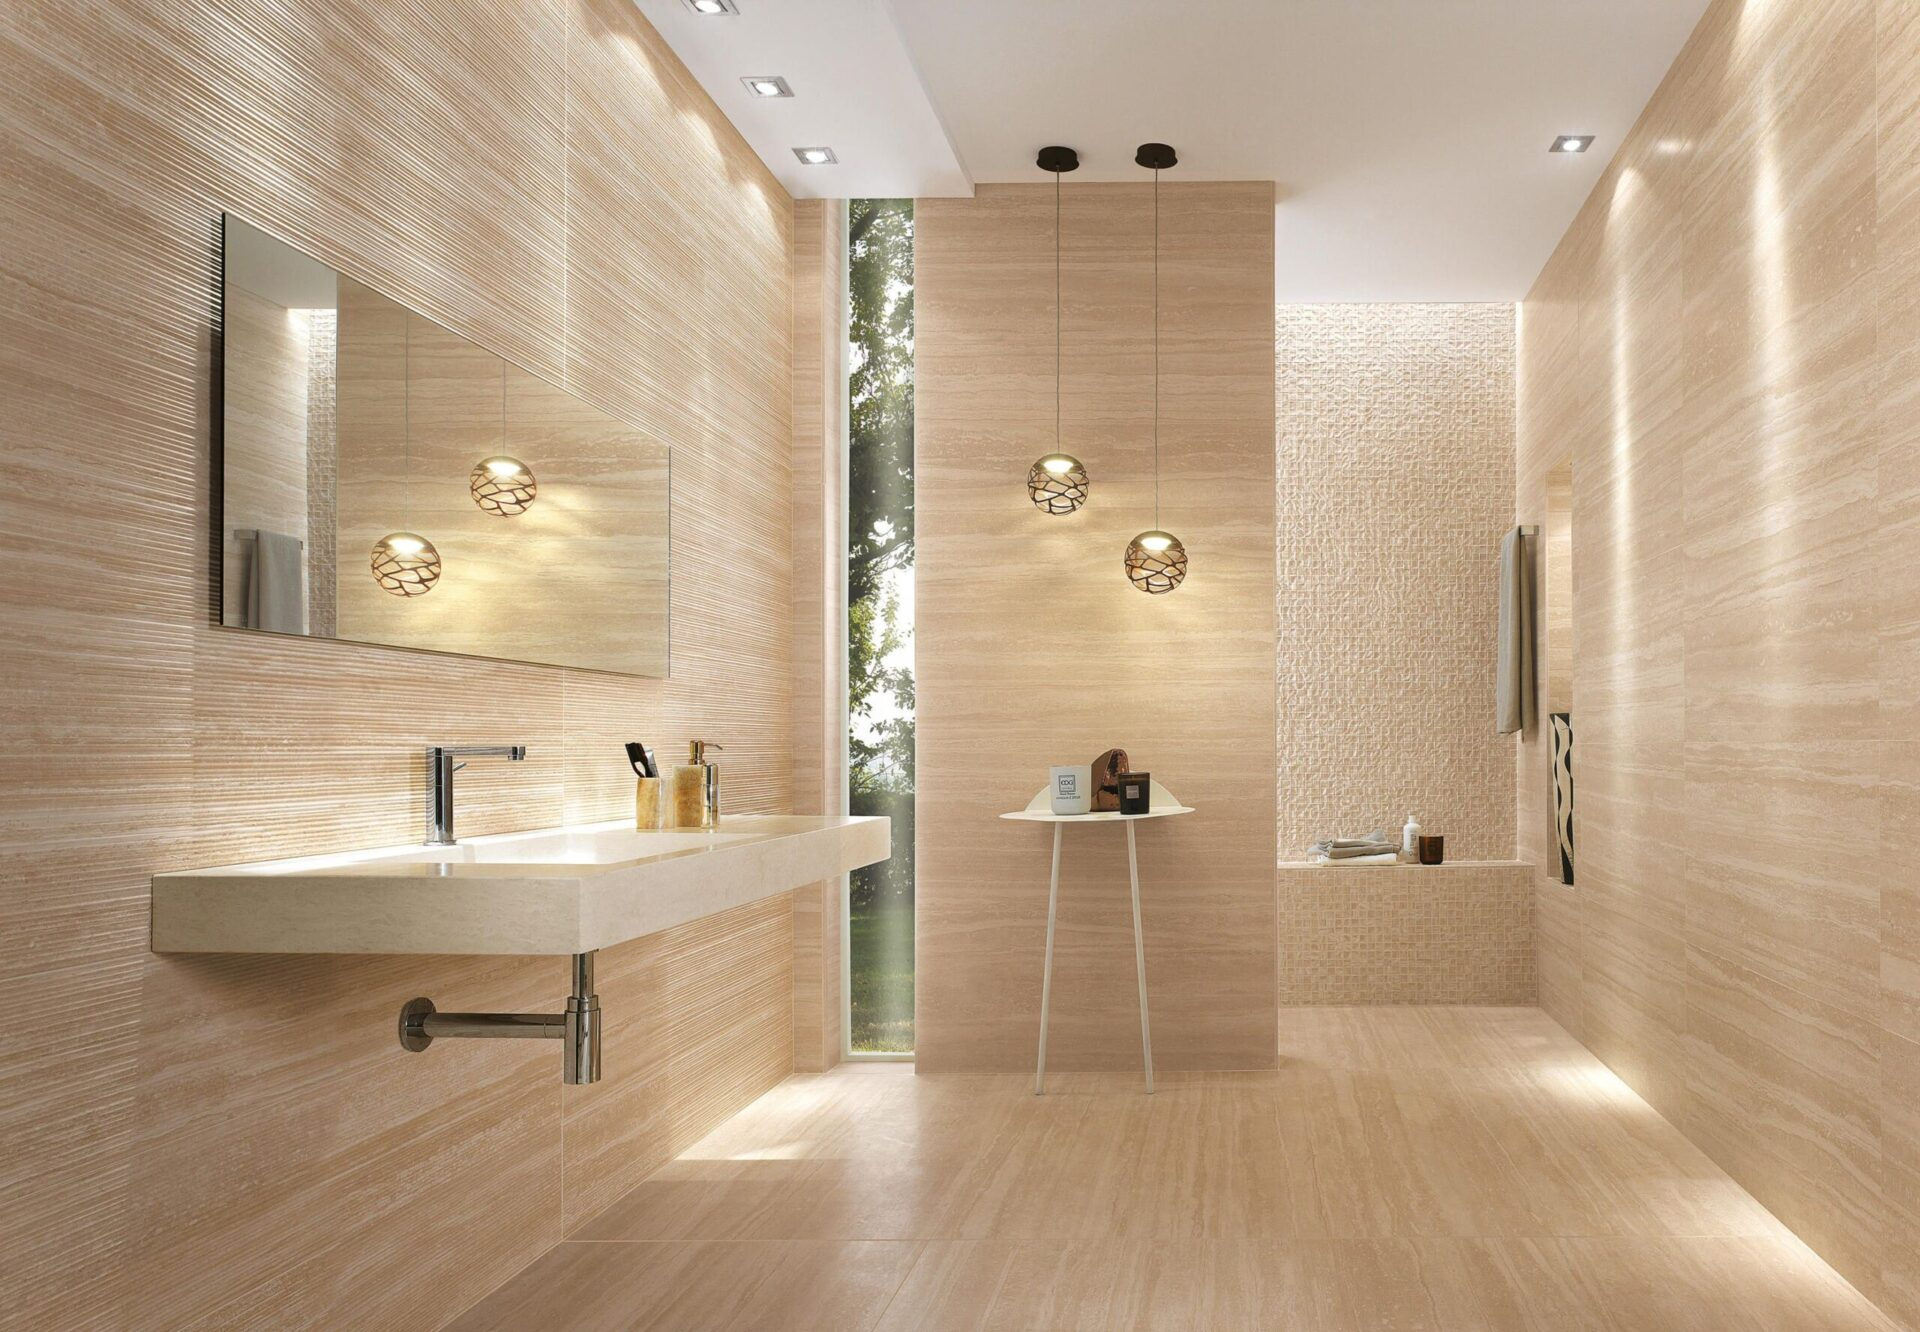 ceramic for the floor and wall design for bathroom